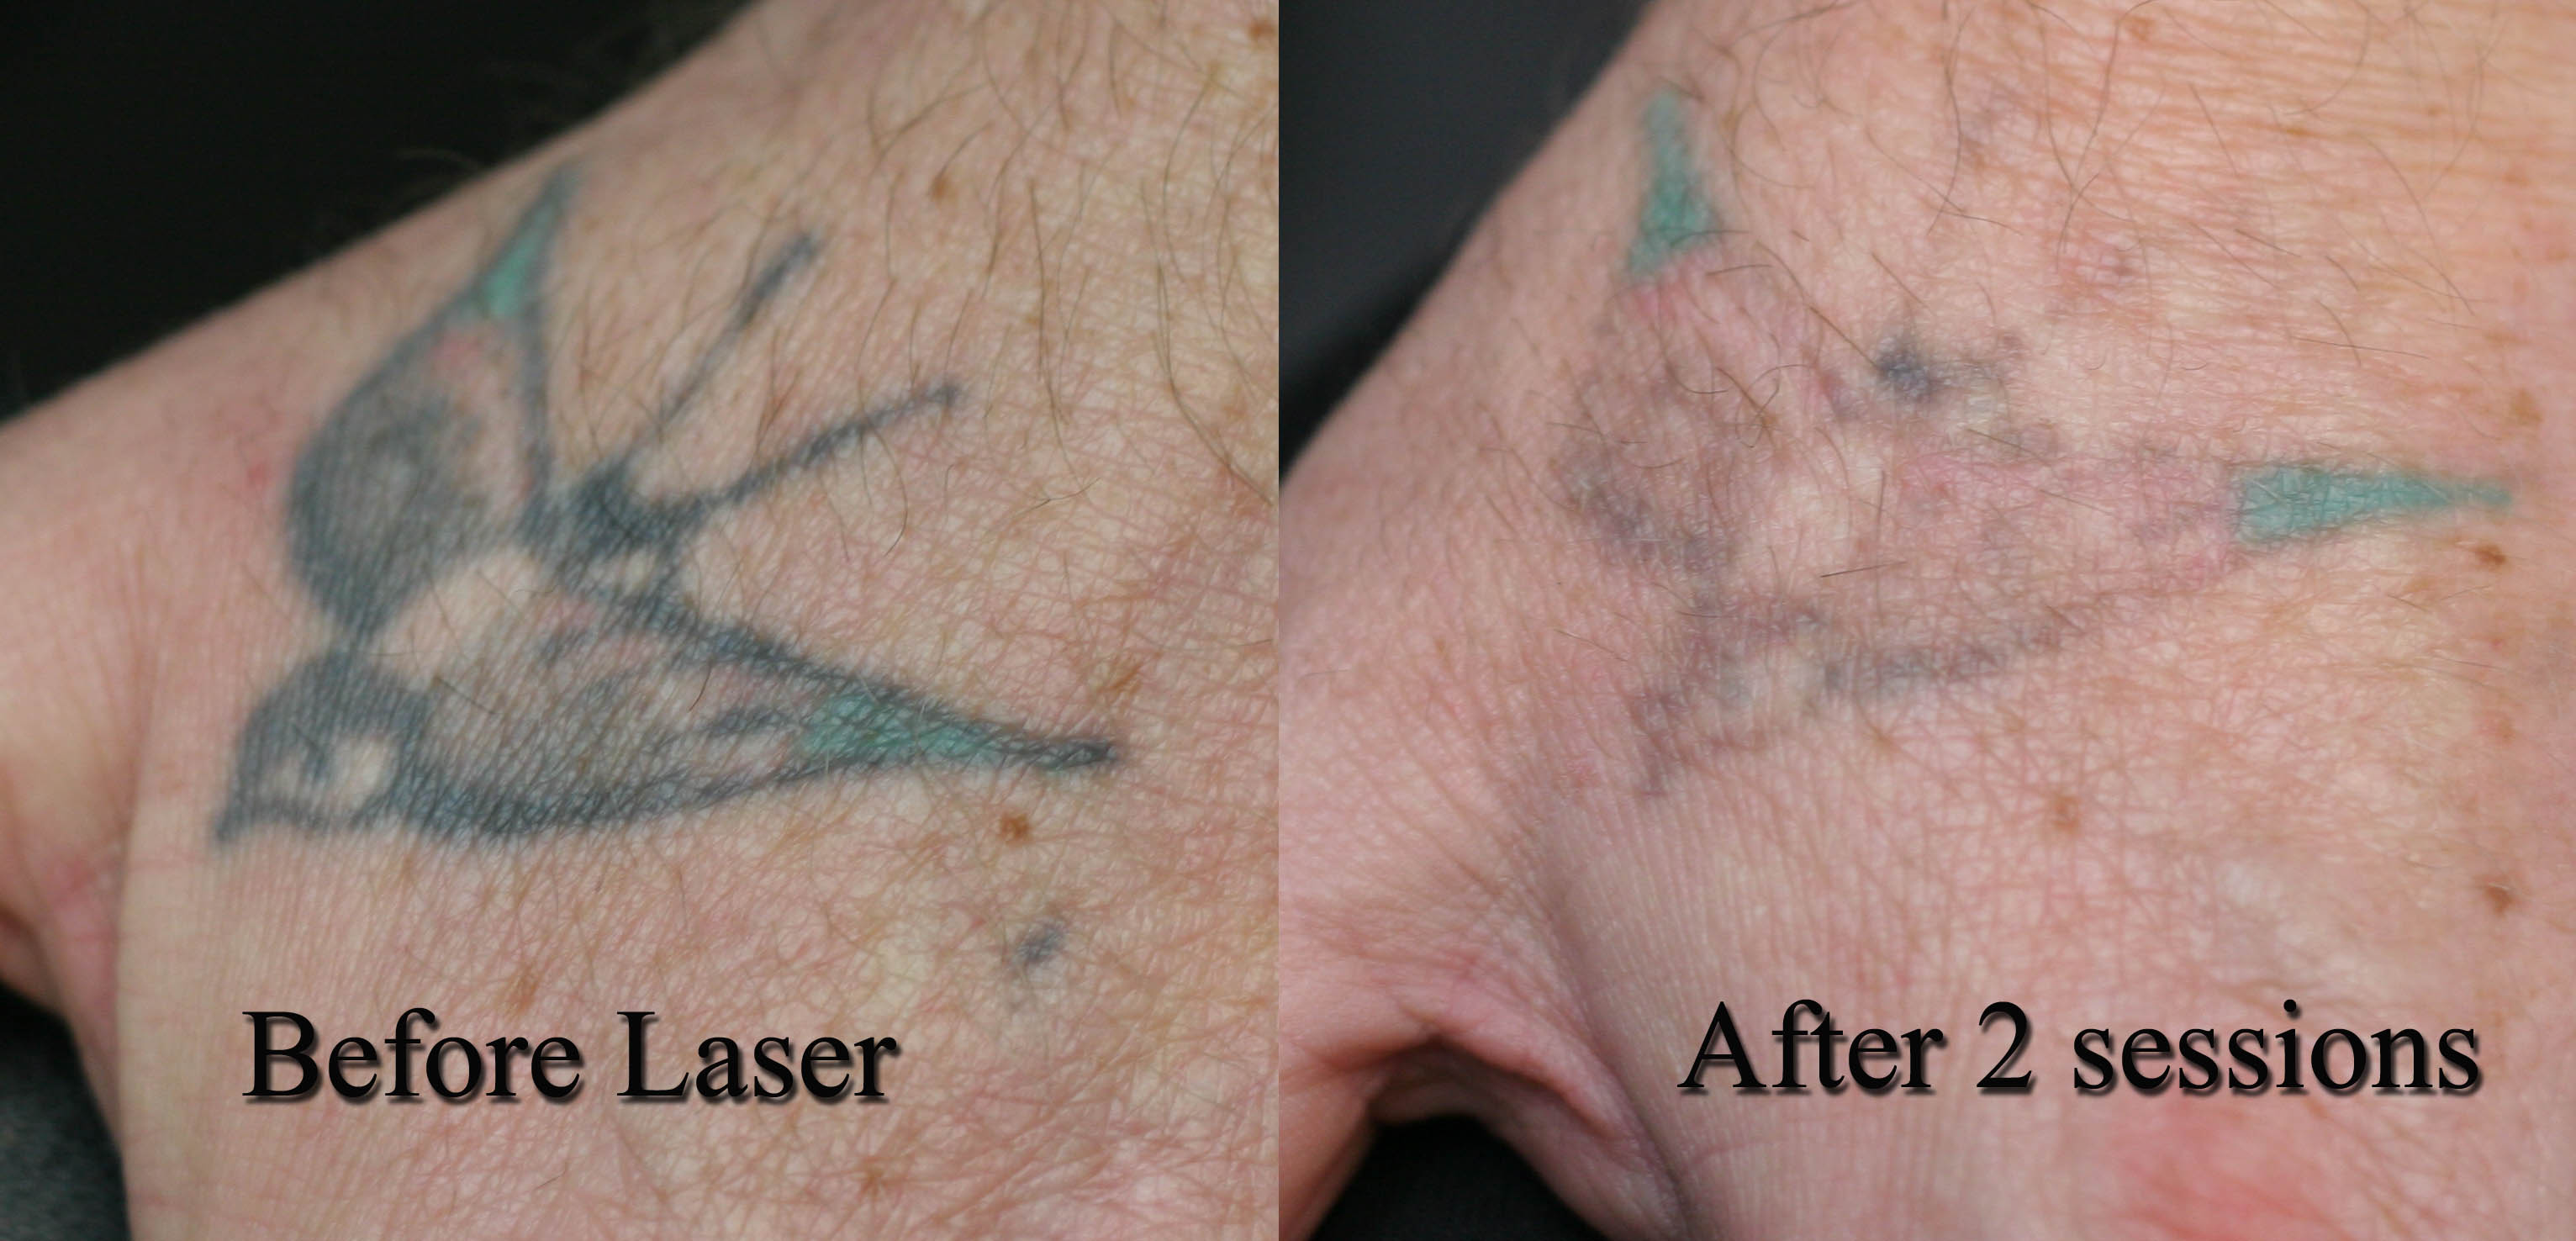 Tattoo Removal Cream Wiki further Top Essential Oils For Mole Removal Pain Lorpur   fjent as well Sciblogs   Is there such a thing as tattoo removal cream  or is it in addition Petunia seeds germinate in 5 to 15 days  Description from en furthermore Permanent Tattoo Removal  Tattoo Removal in Patna   View Cost as well Permanent makeup   Wikipedia likewise Permanent makeup   Wikipedia as well 3 Easy Ways to Remove Permanent Marker from the Skin   wikiHow furthermore Tattoo removal – HelpFullHanna  Tips Tricks and Info additionally Tattoo removal Ballarat   top laser tattoo removal for you moreover 44 best images about Tattoo Removal on Pinterest   Before and. on tattoo removal cream wiki